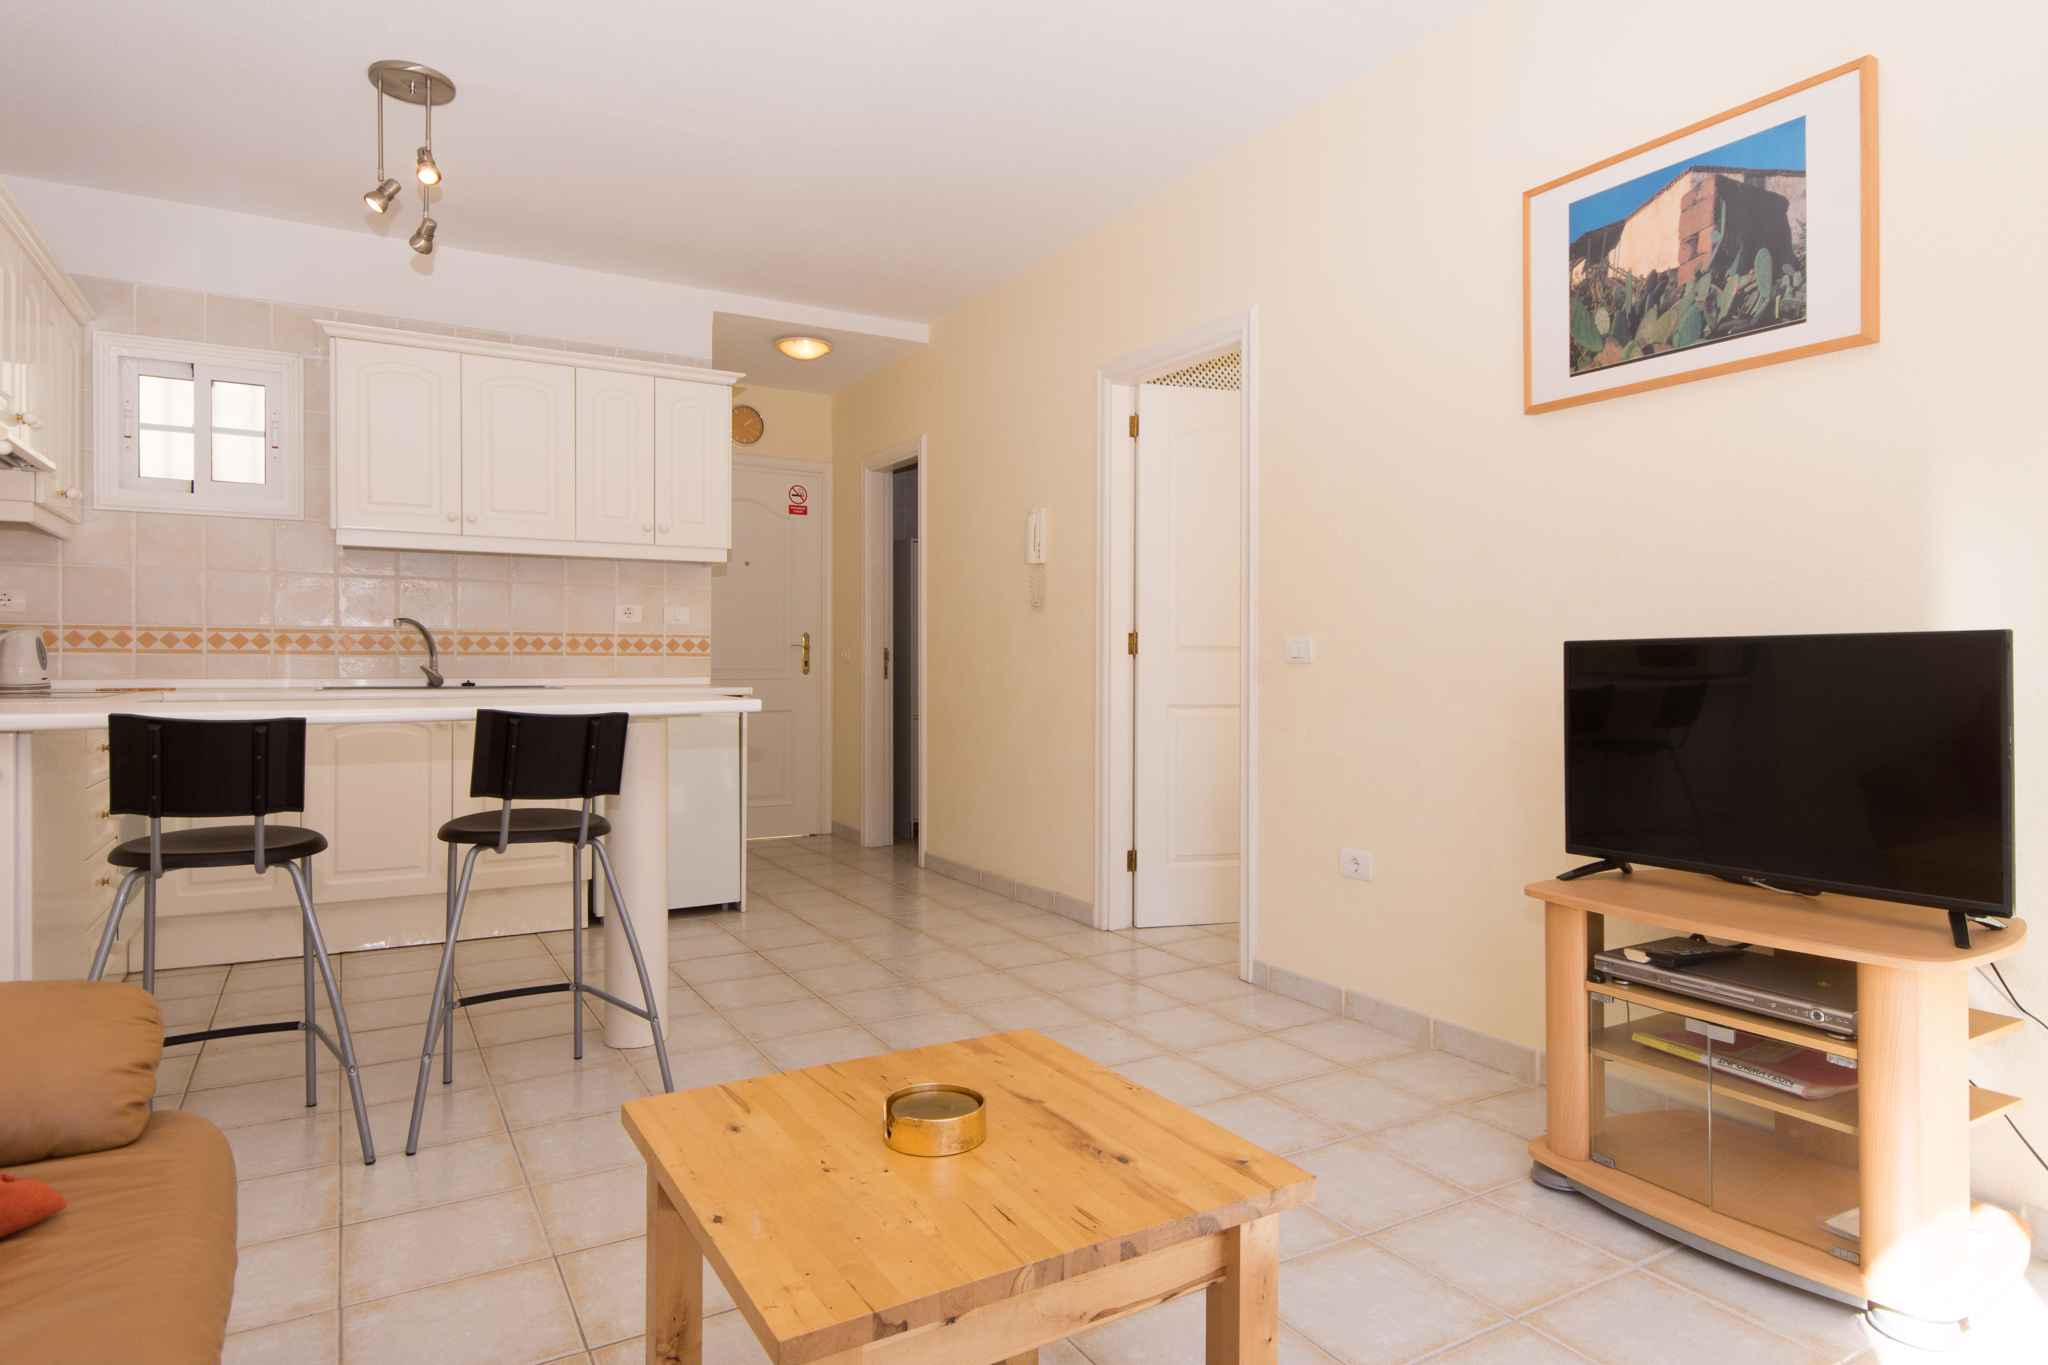 Holiday apartment mit Pool in Ferienanlage (2382979), Los Cristianos, Tenerife, Canary Islands, Spain, picture 9